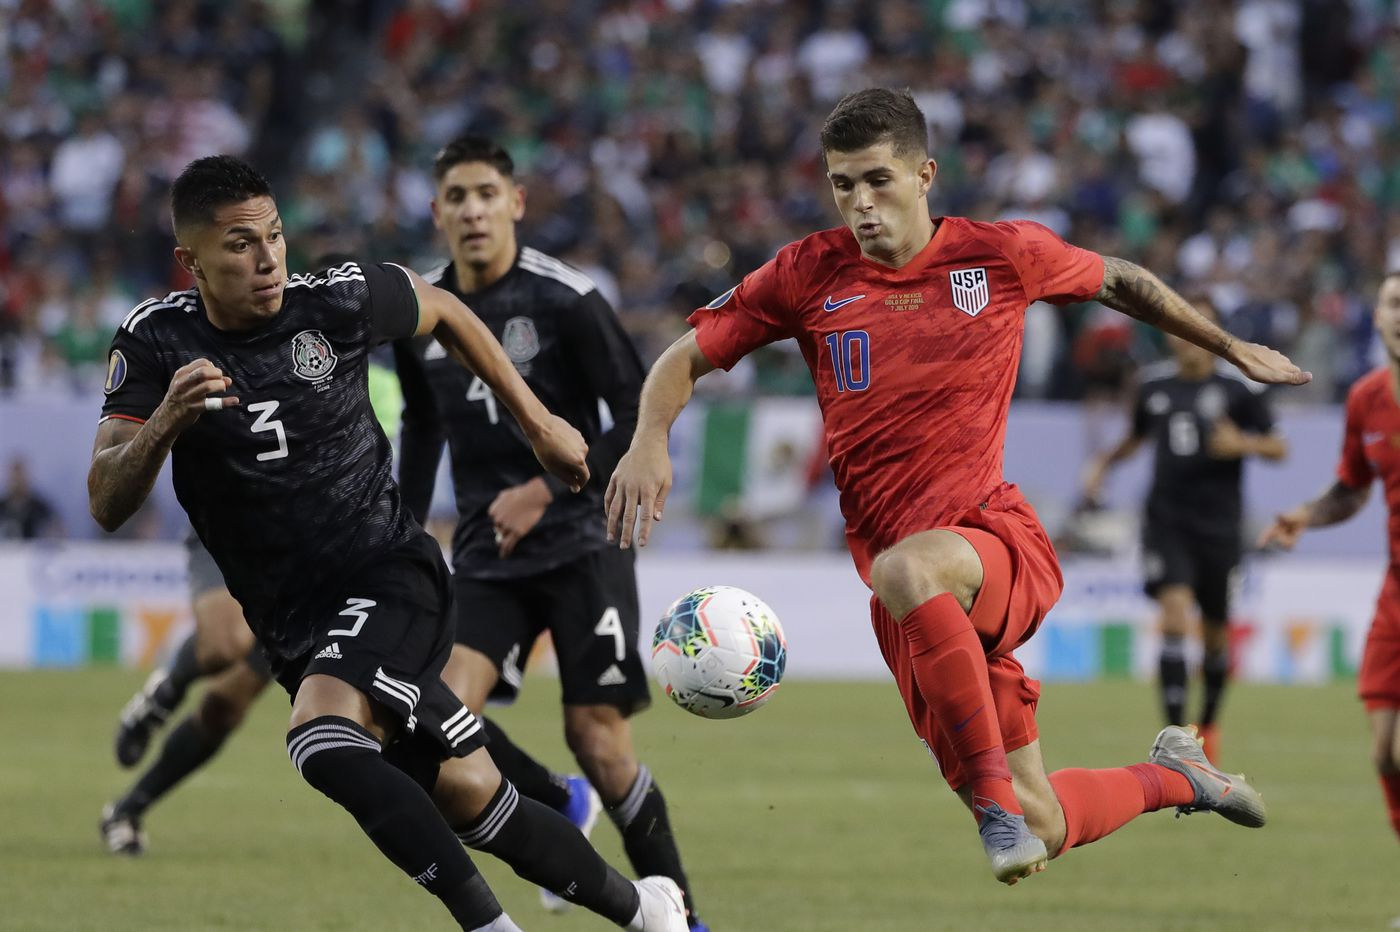 Concacaf changes 2022 men's World Cup qualifying format: Final round now has 8 teams